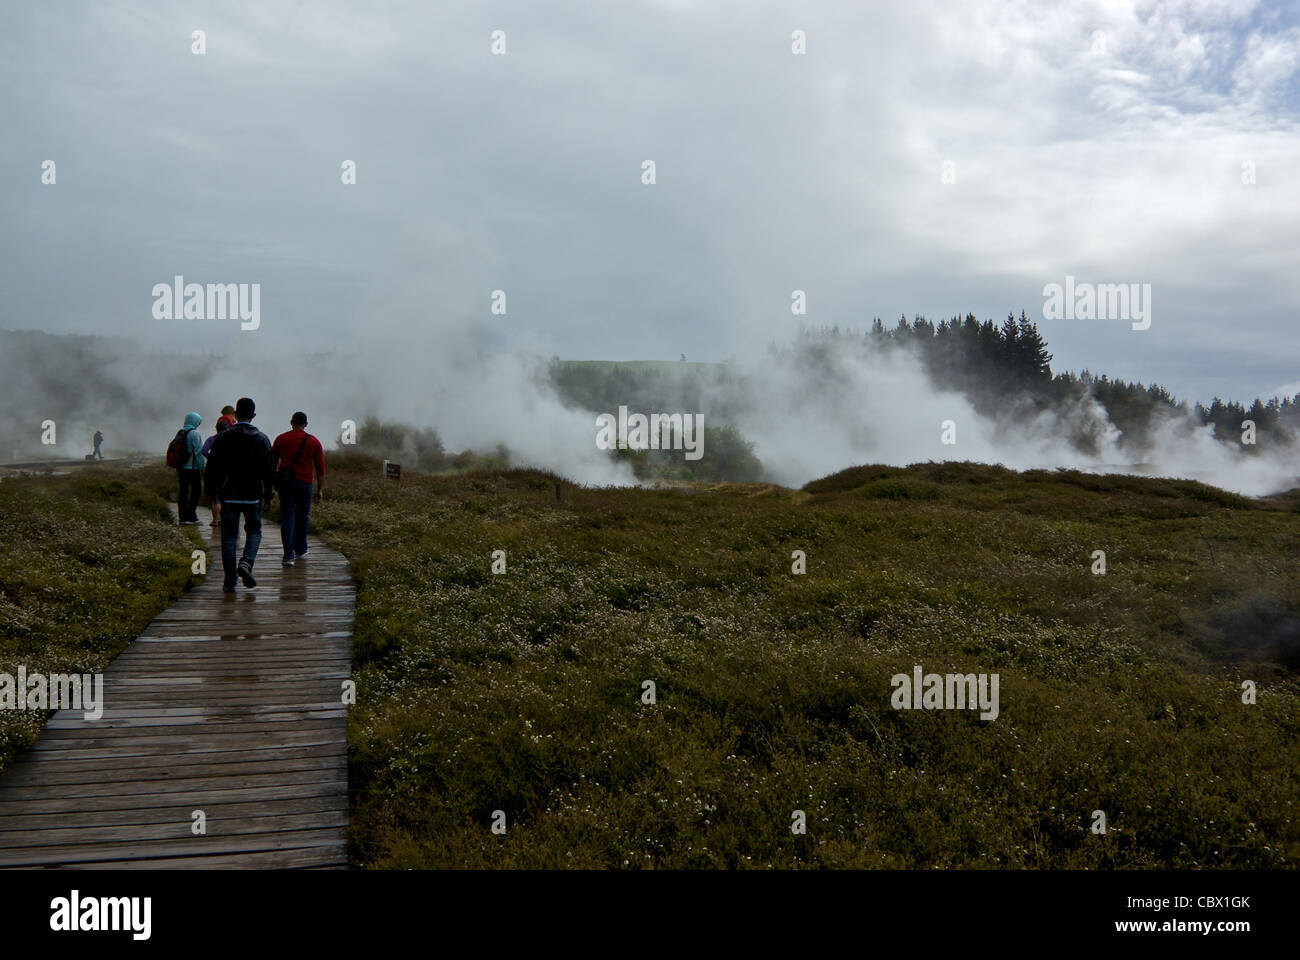 Visitors on wooden walkway Craters of the Moon geothermal steam vents Lake Taupo New Zealand - Stock Image